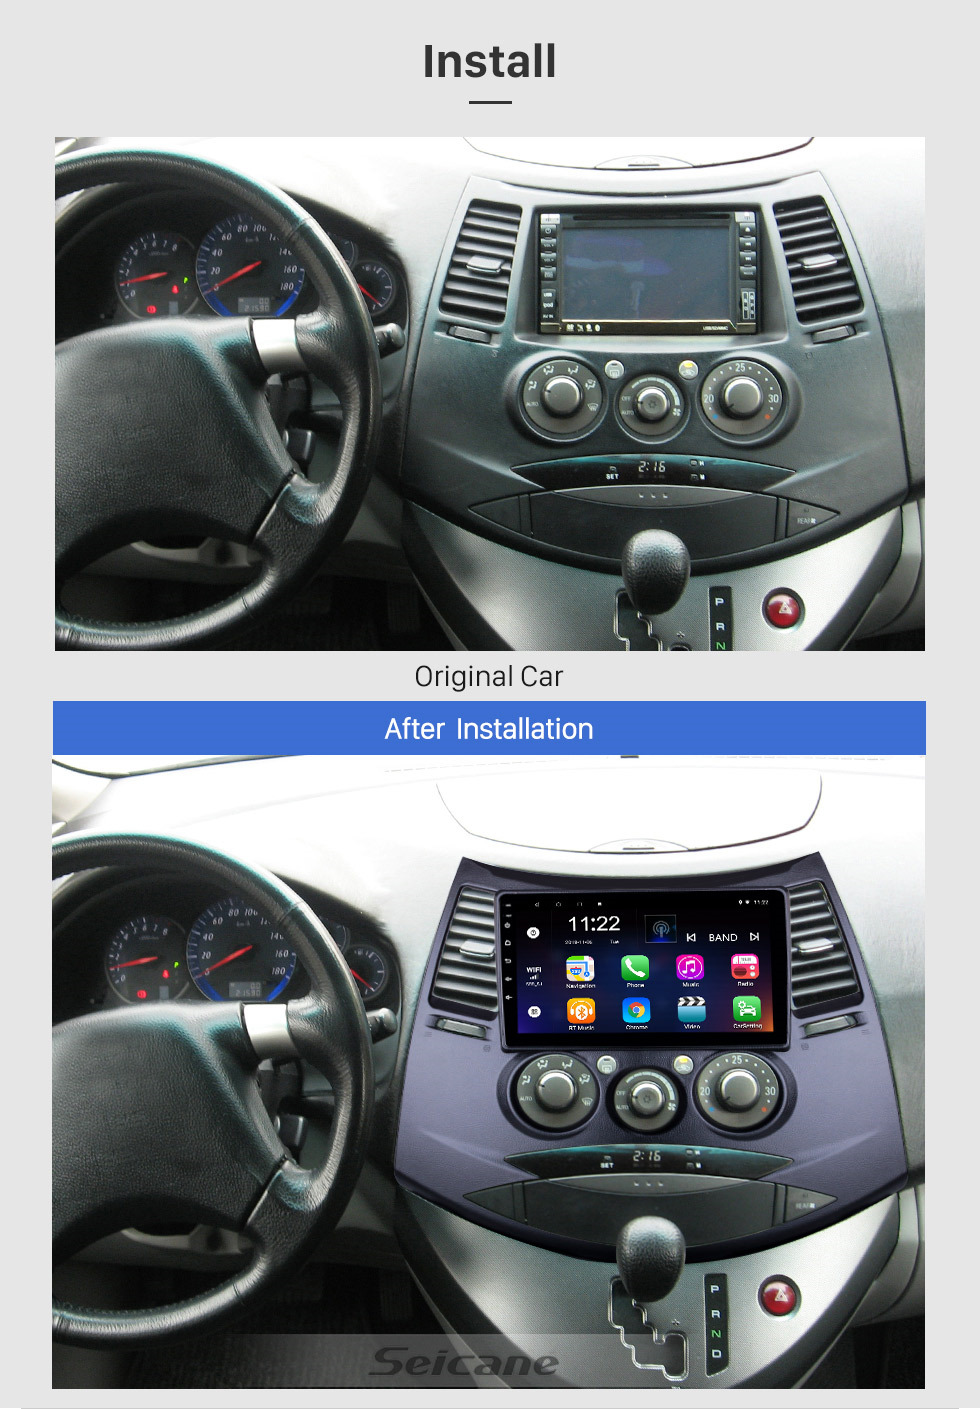 Seicane OEM 9 inch Android 10.0 for 2006 Mitsubishi Grandis Radio with Bluetooth HD Touchscreen GPS Navigation System support Carplay